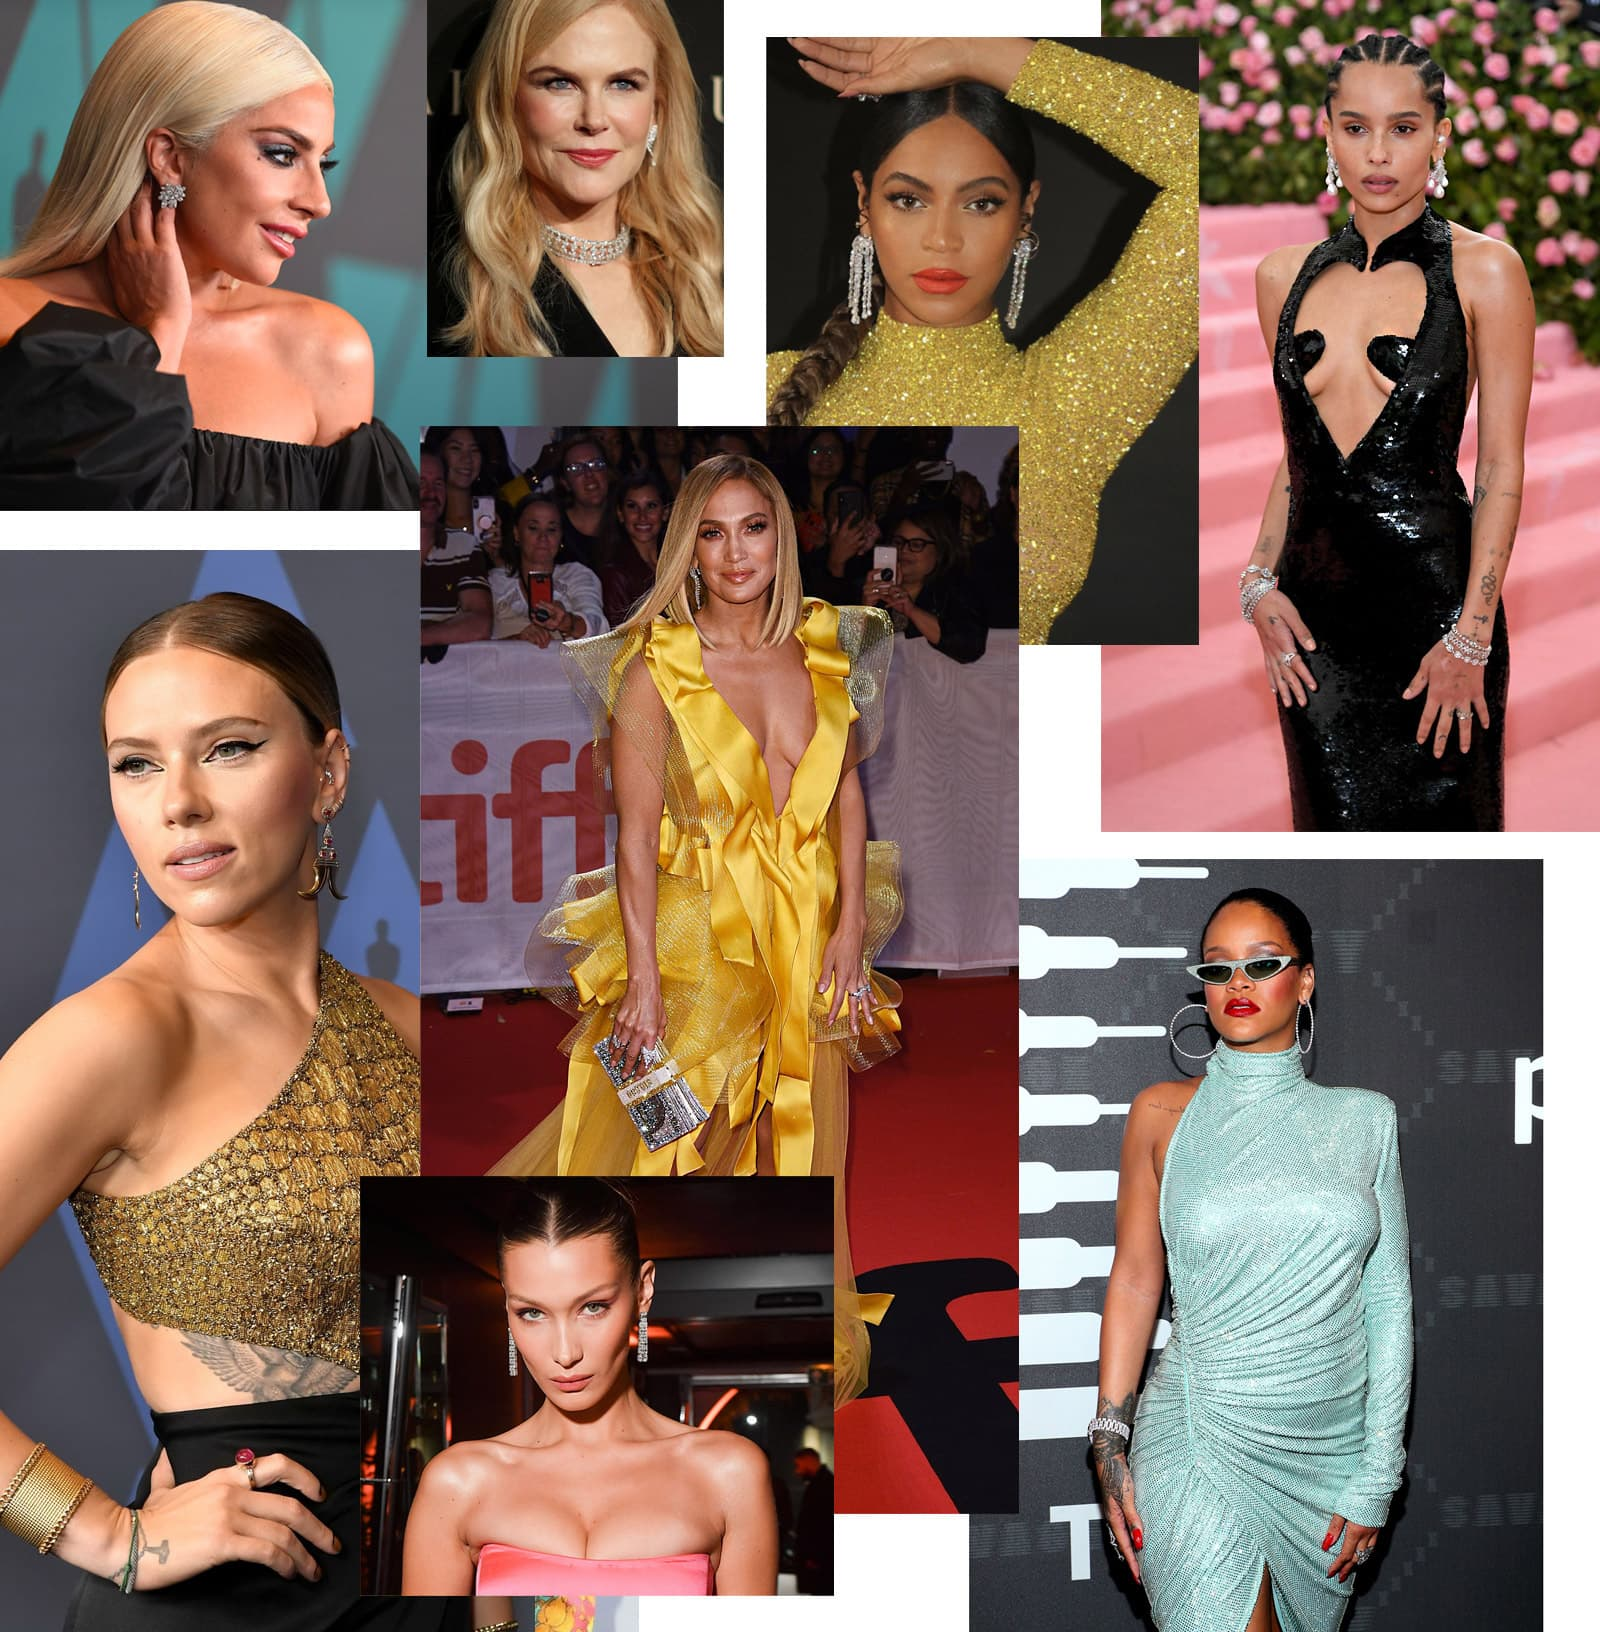 Stars wearing a variety of fine jewellery provided by D'Orazio & Associates PR on the red carpet